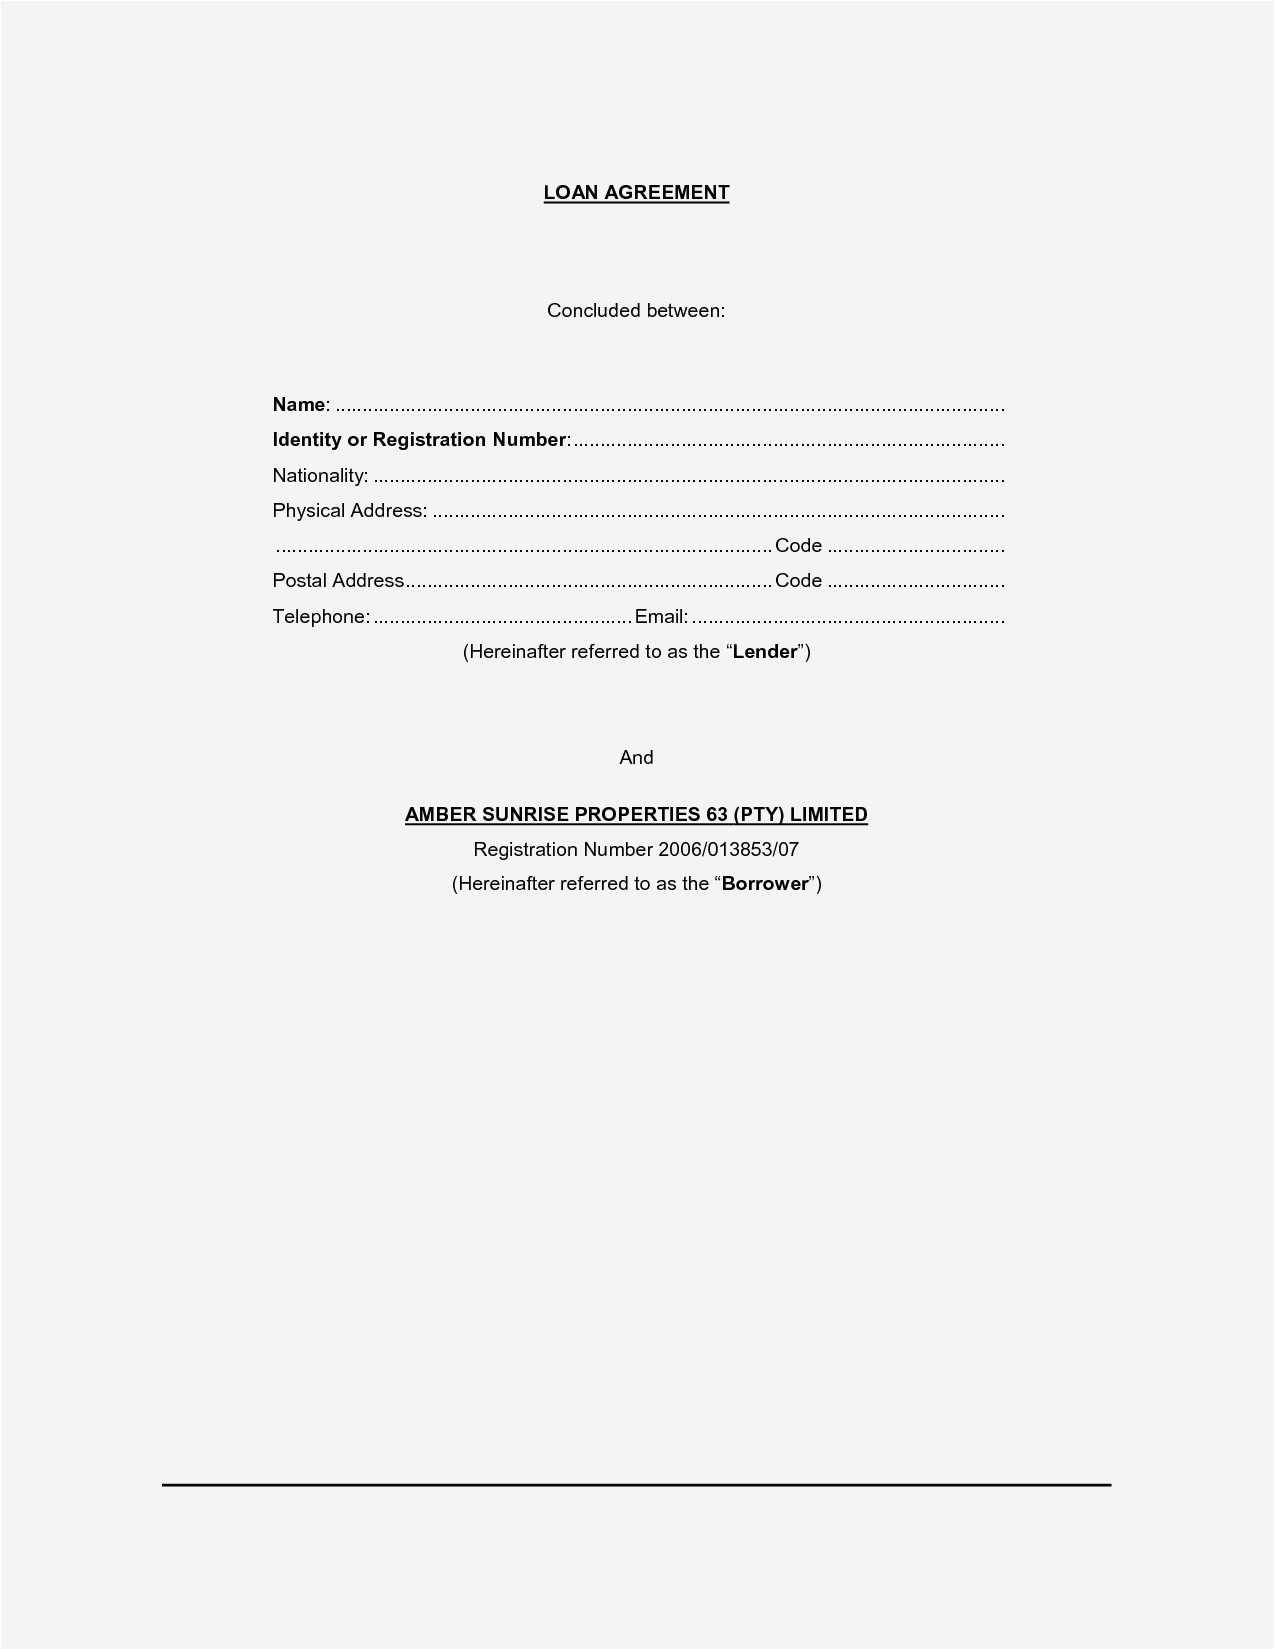 Investment Agreement Template Between Two Parties